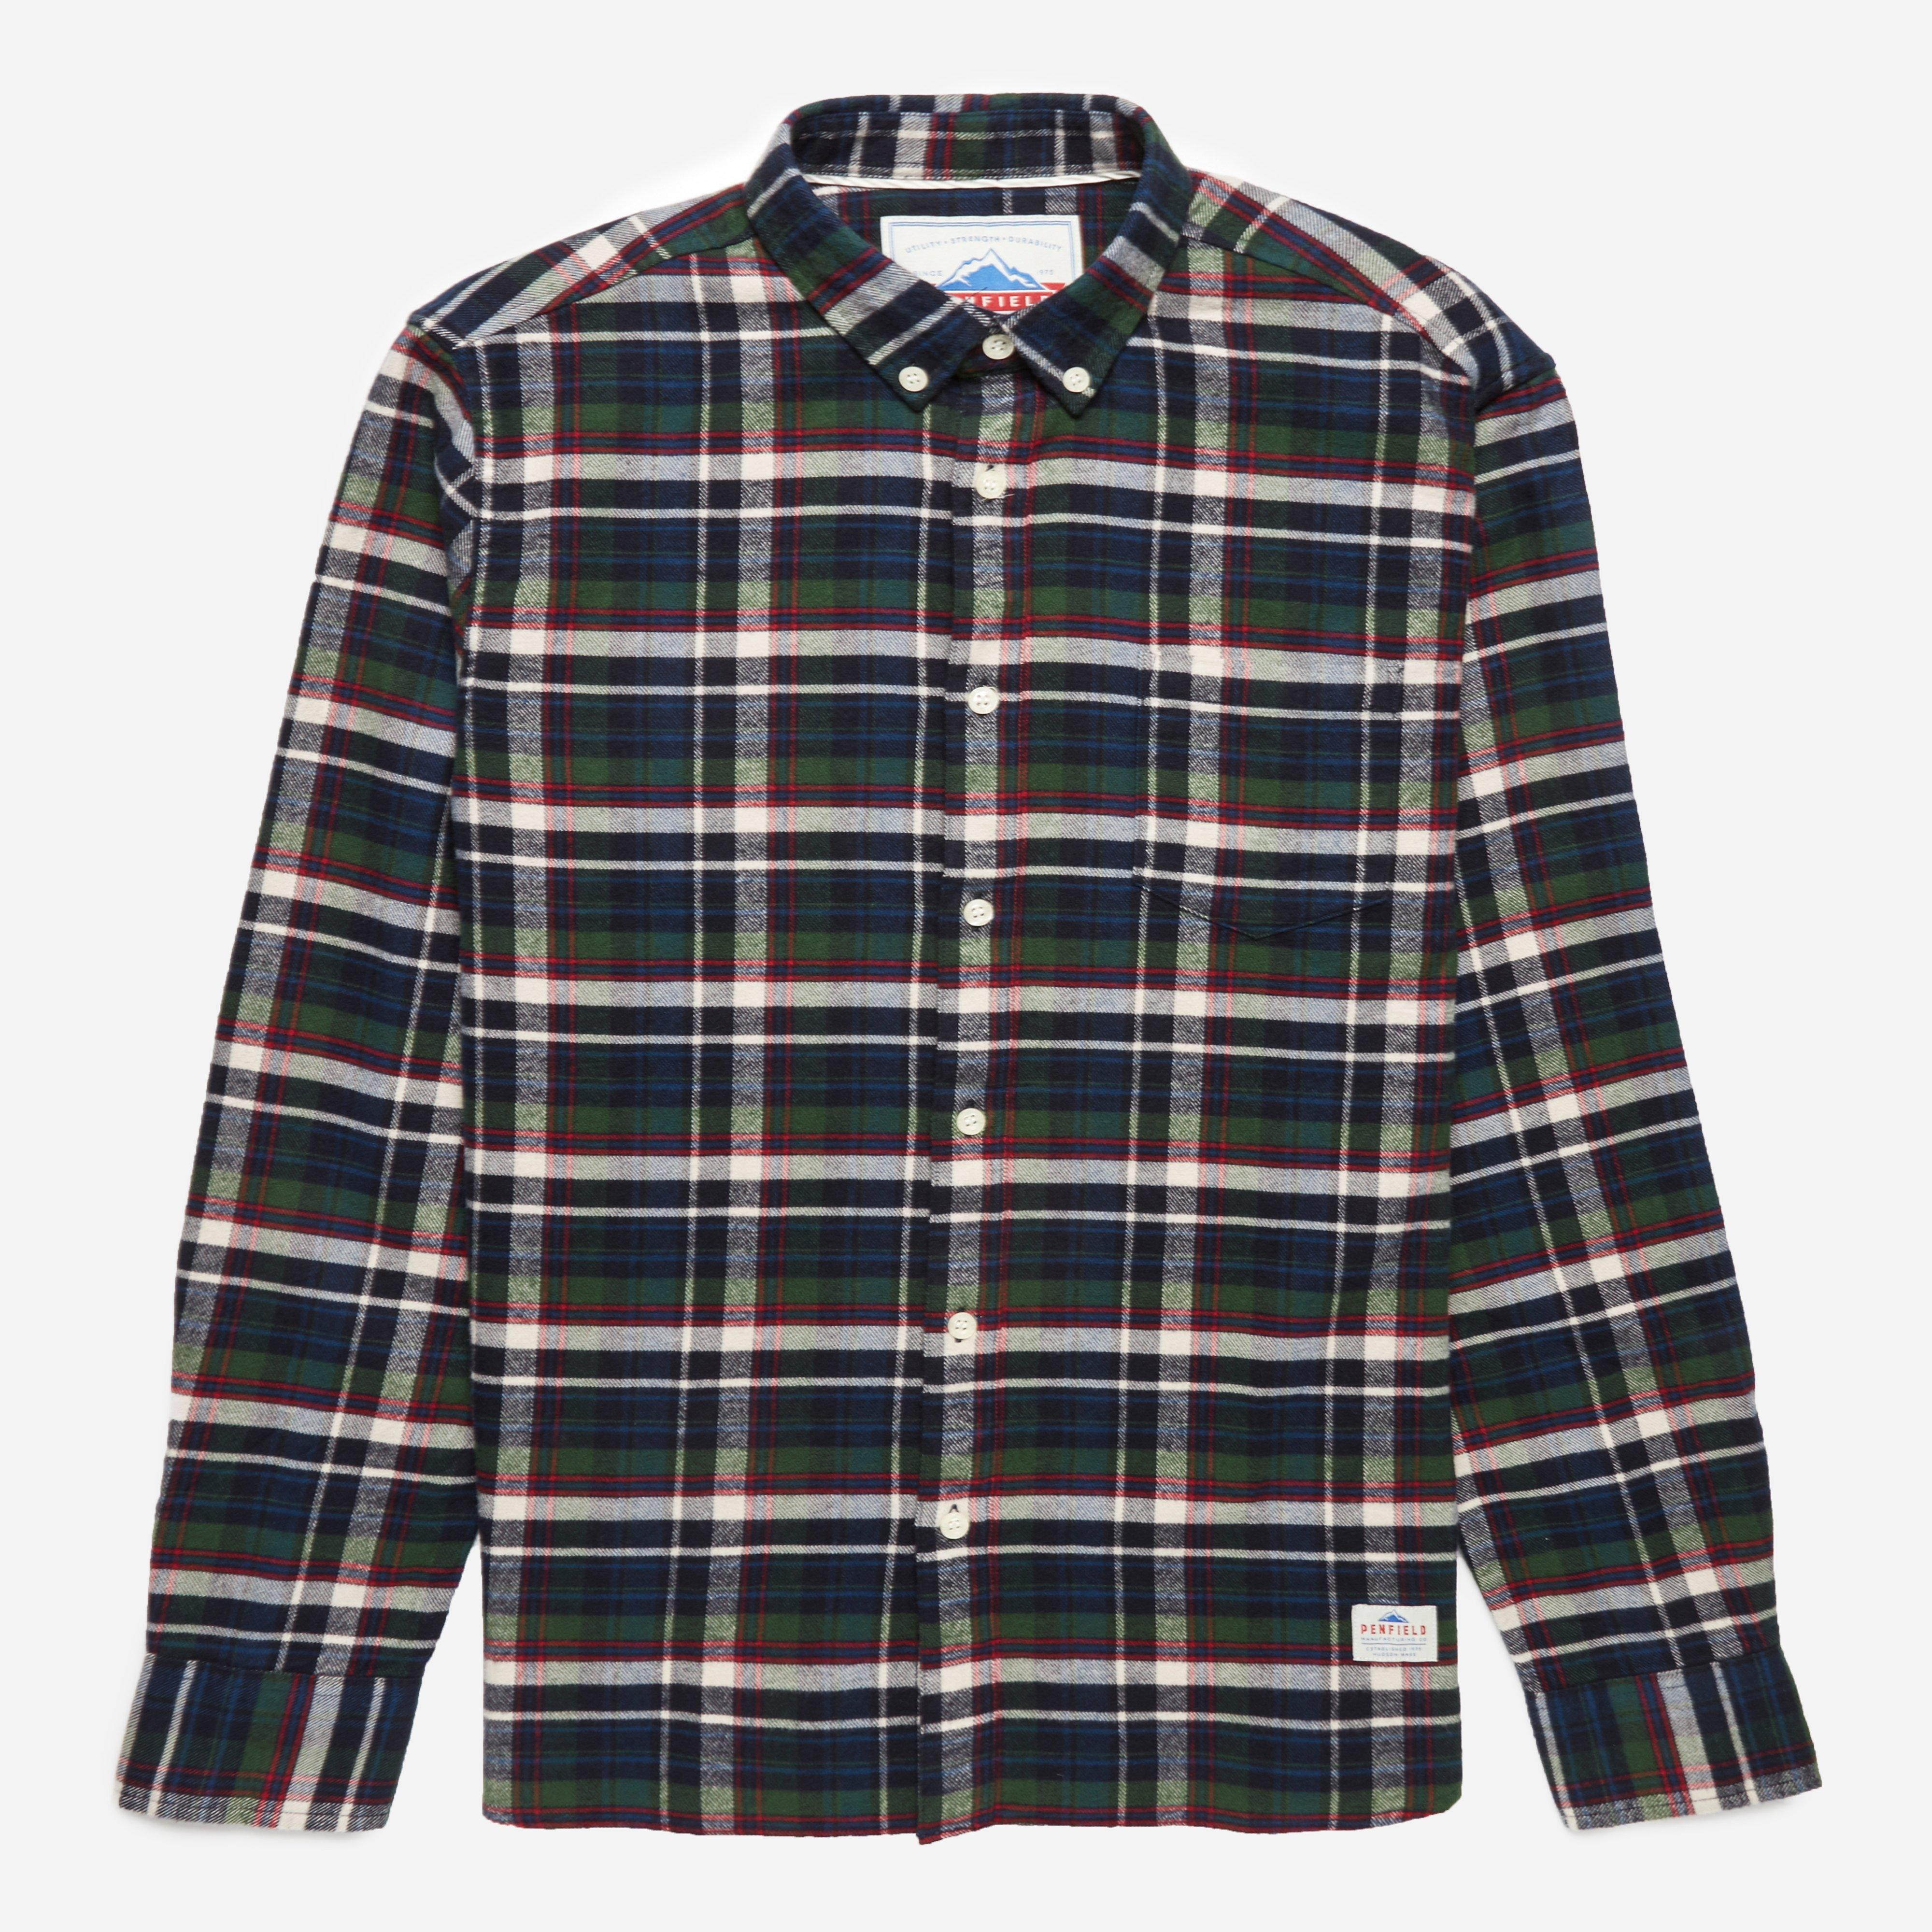 Penfield Barrhead Check Shirt